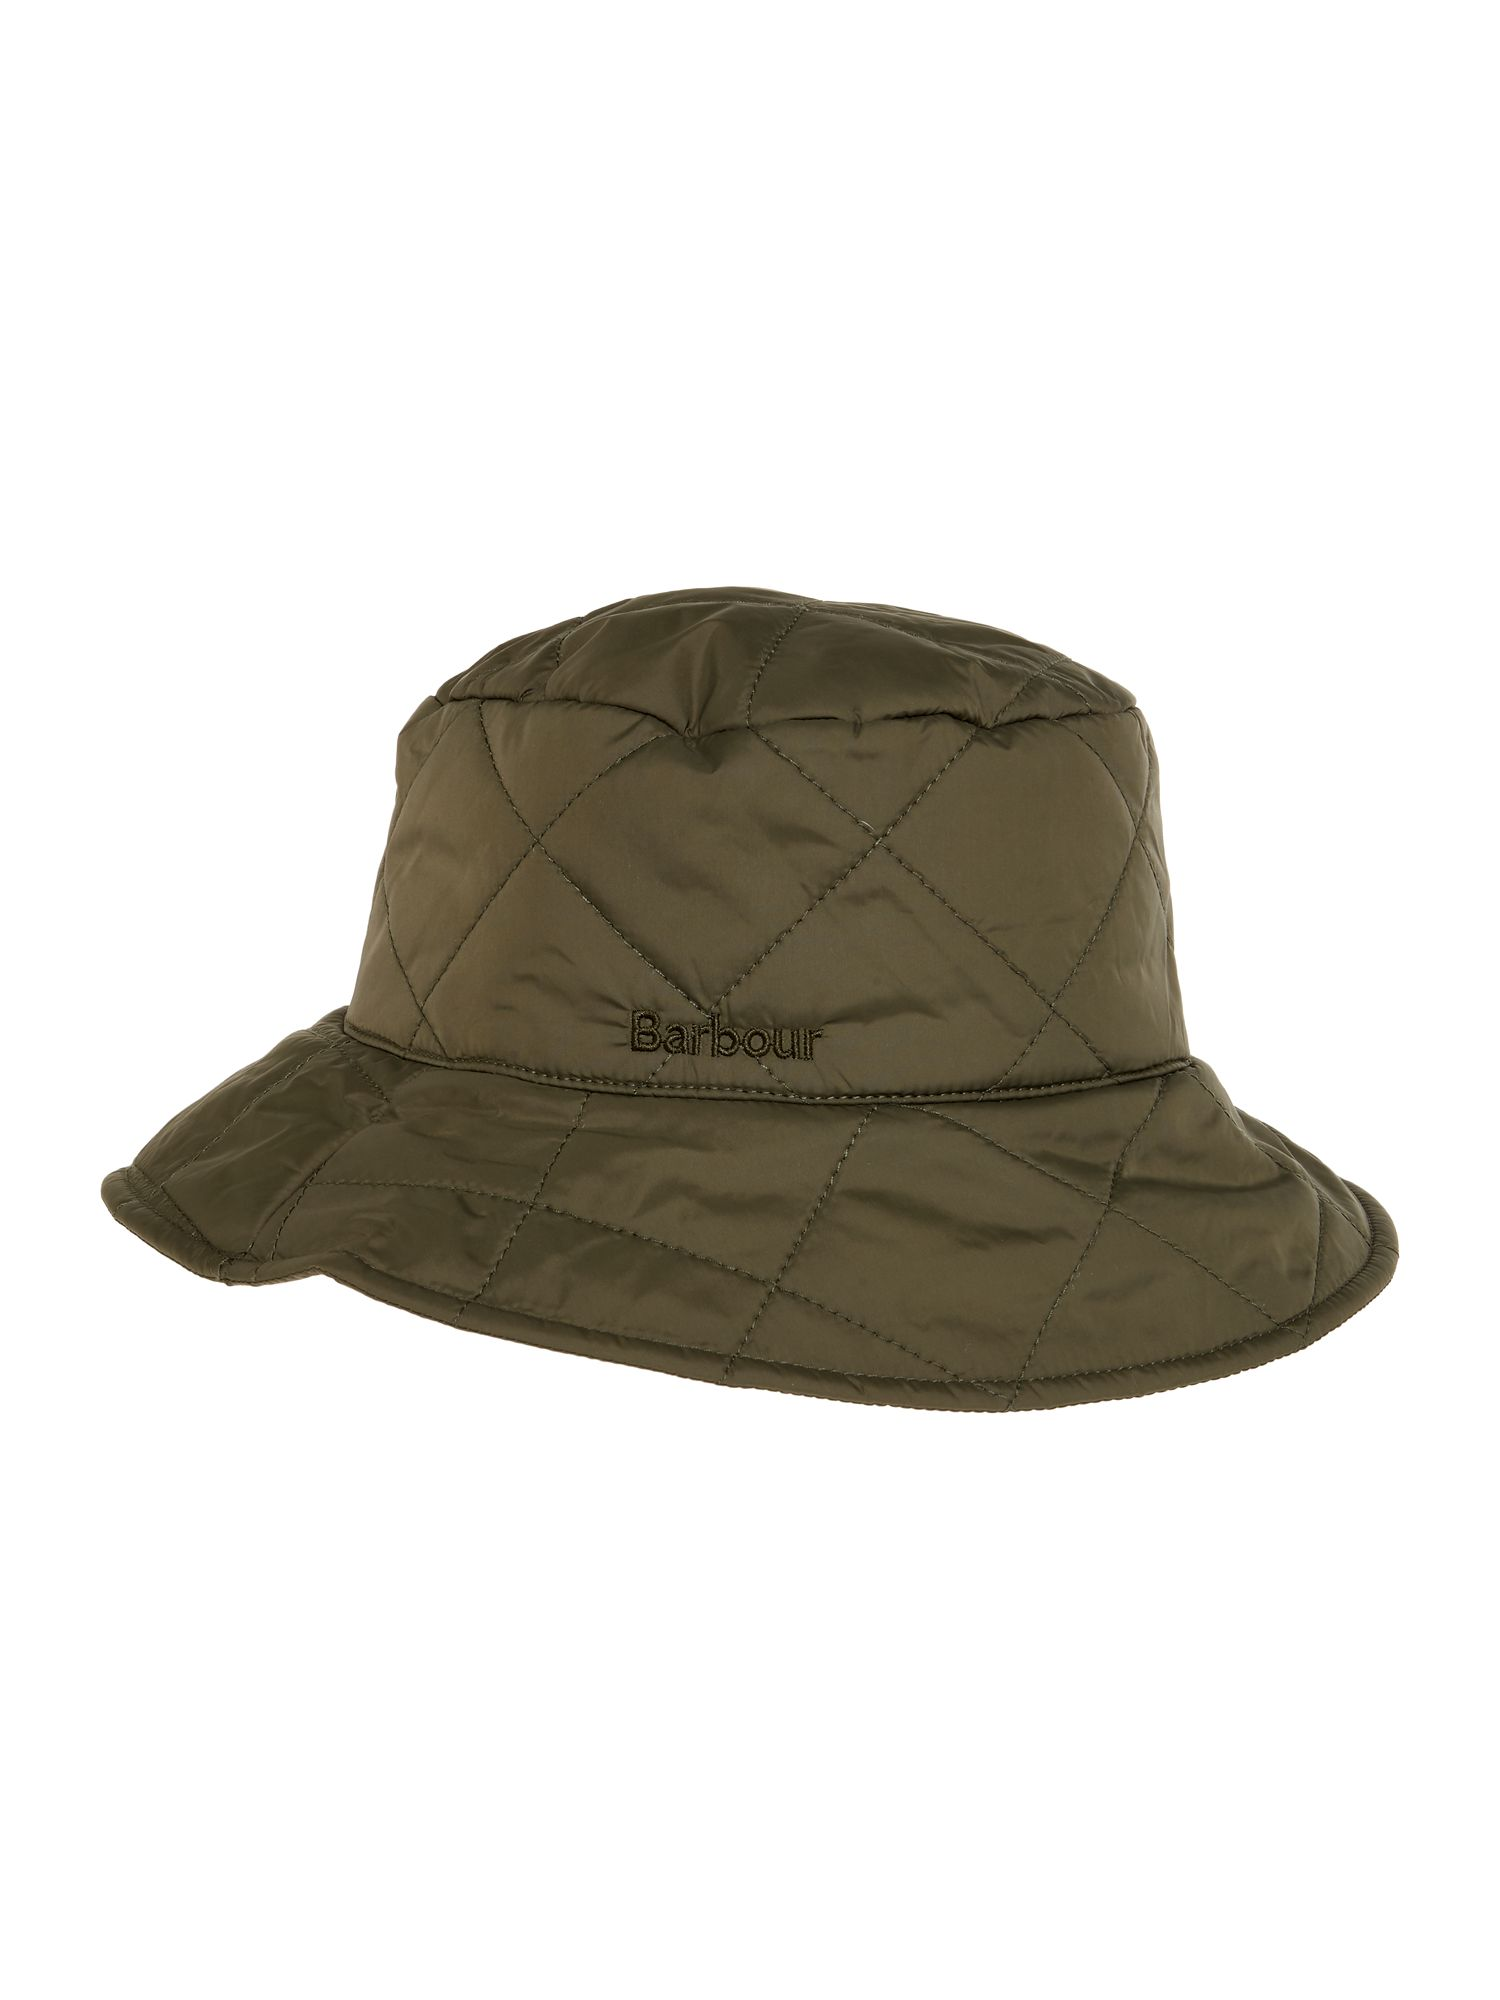 Barbour Quilted Bucket Hat Olive